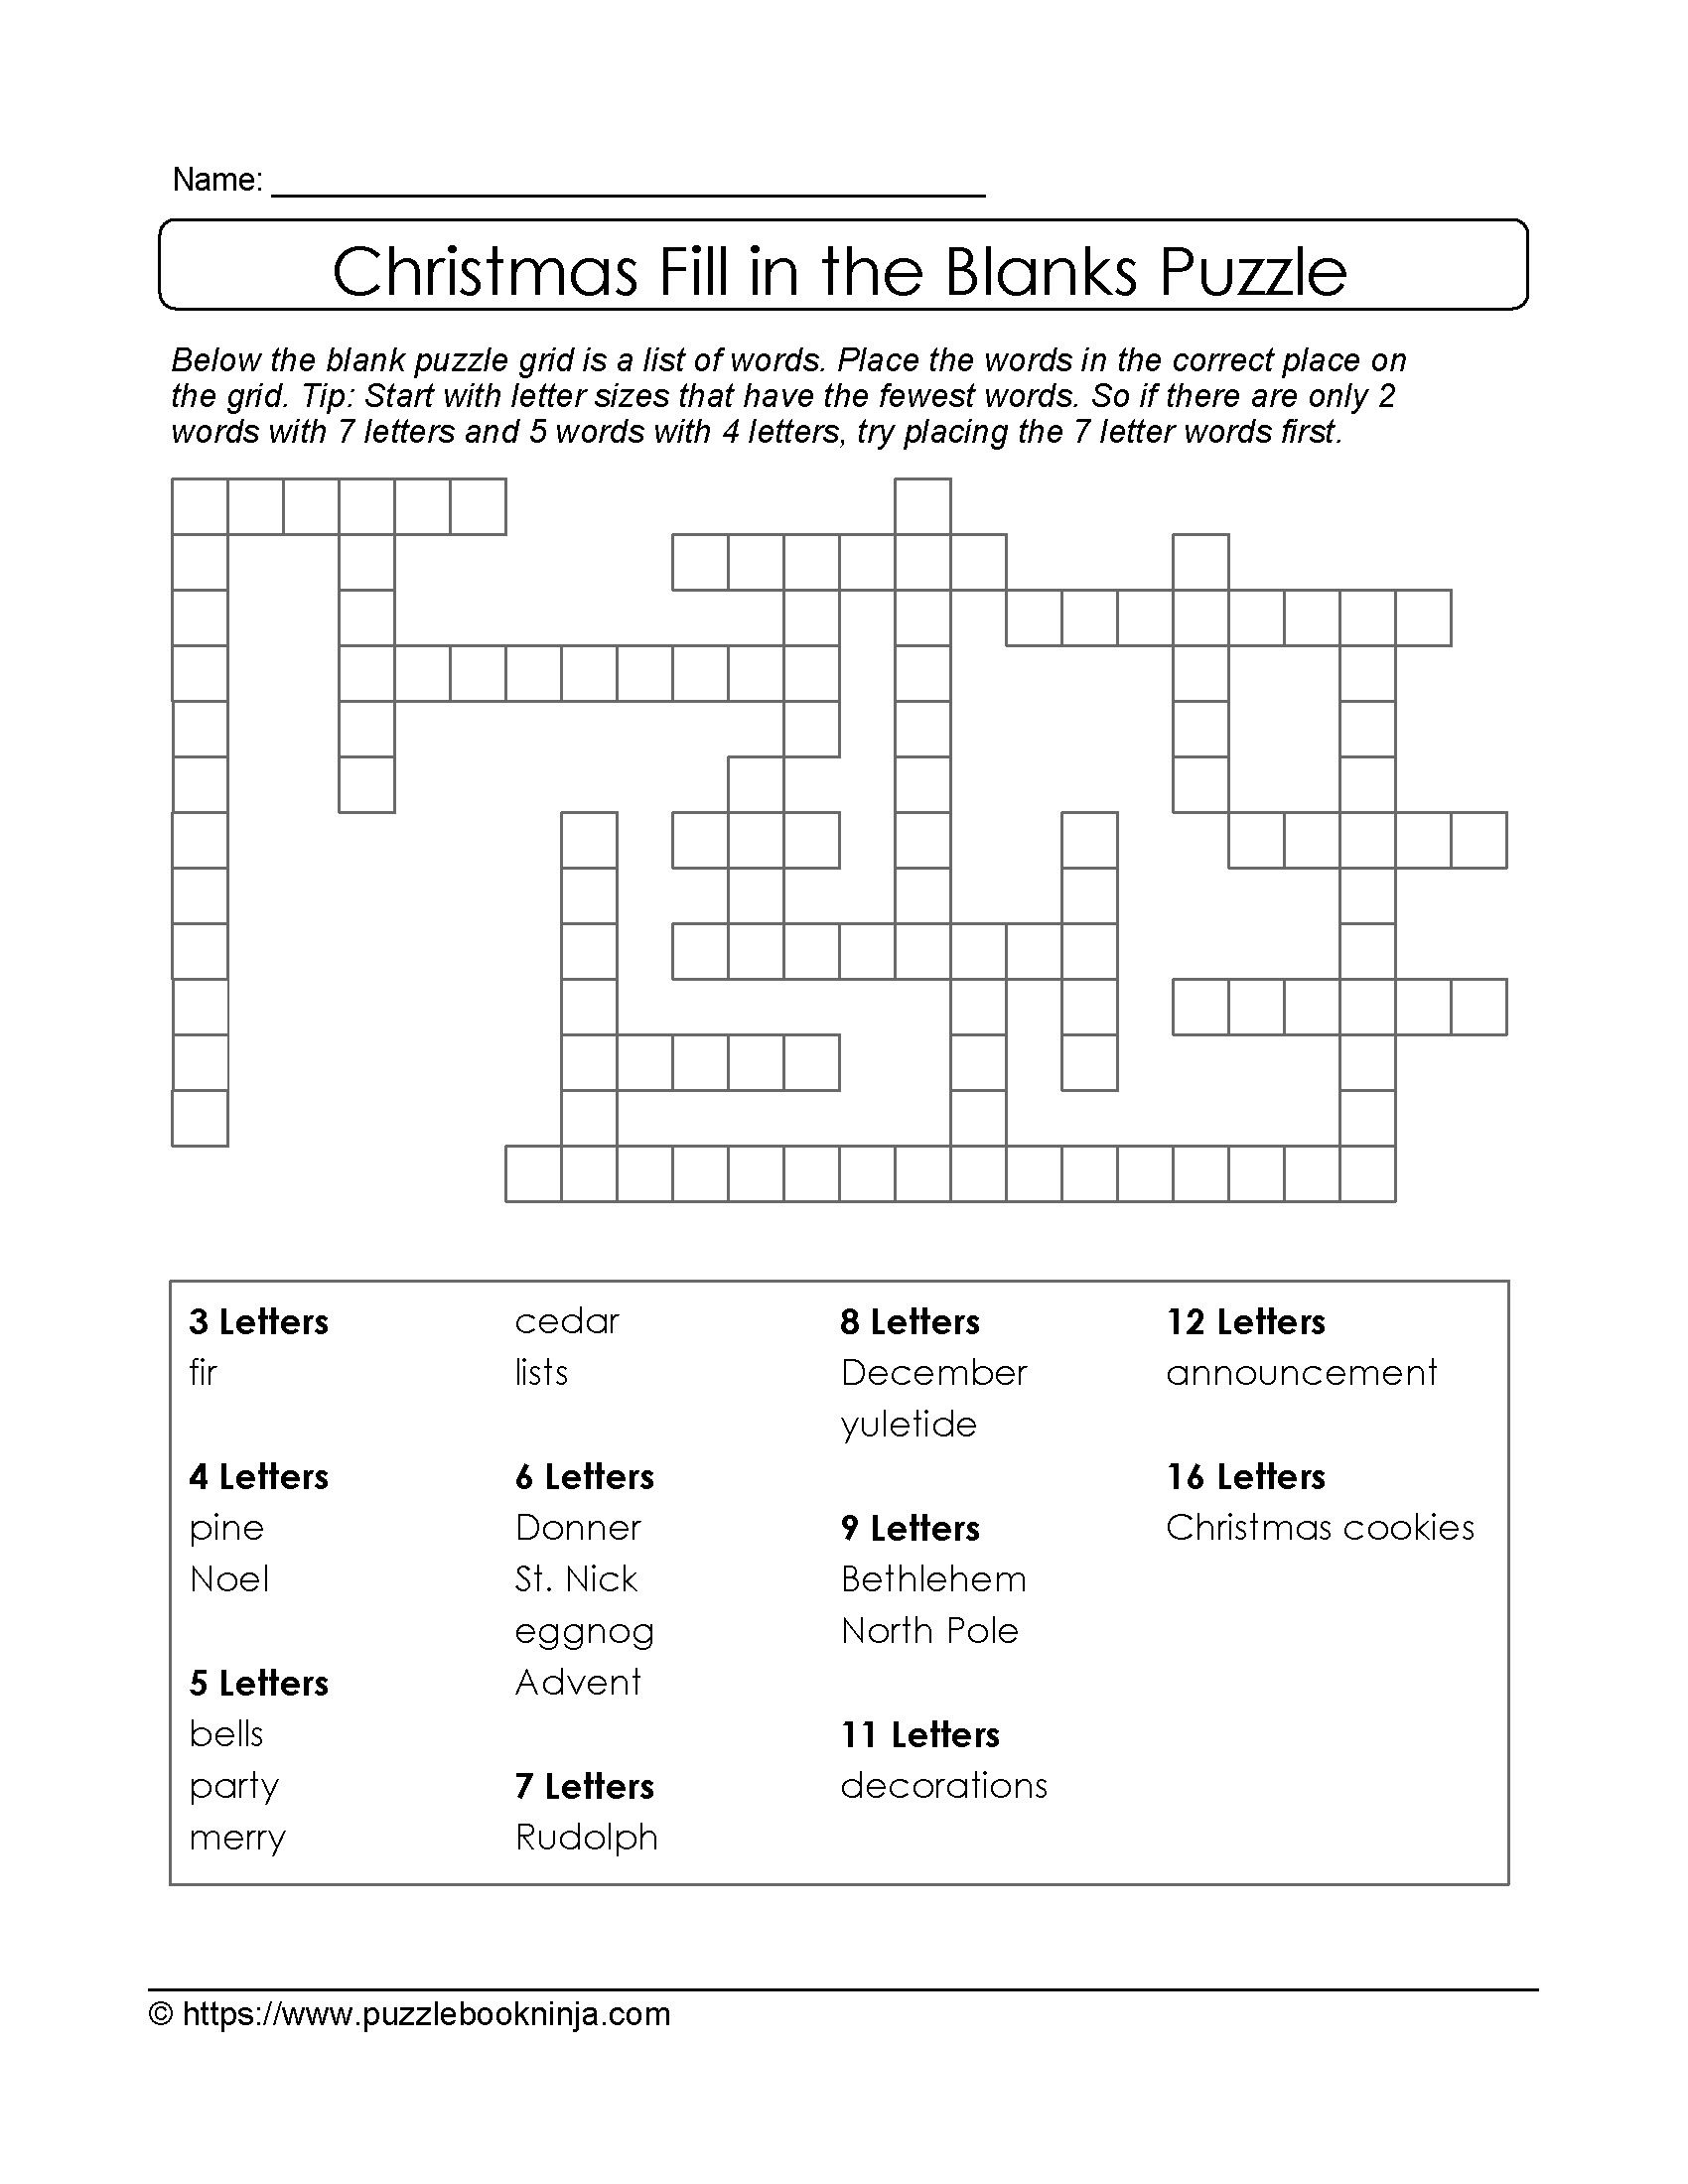 Christmas Printable Puzzle. Free Fill In The Blanks. | Christmas - Printable Xmas Crossword Puzzles